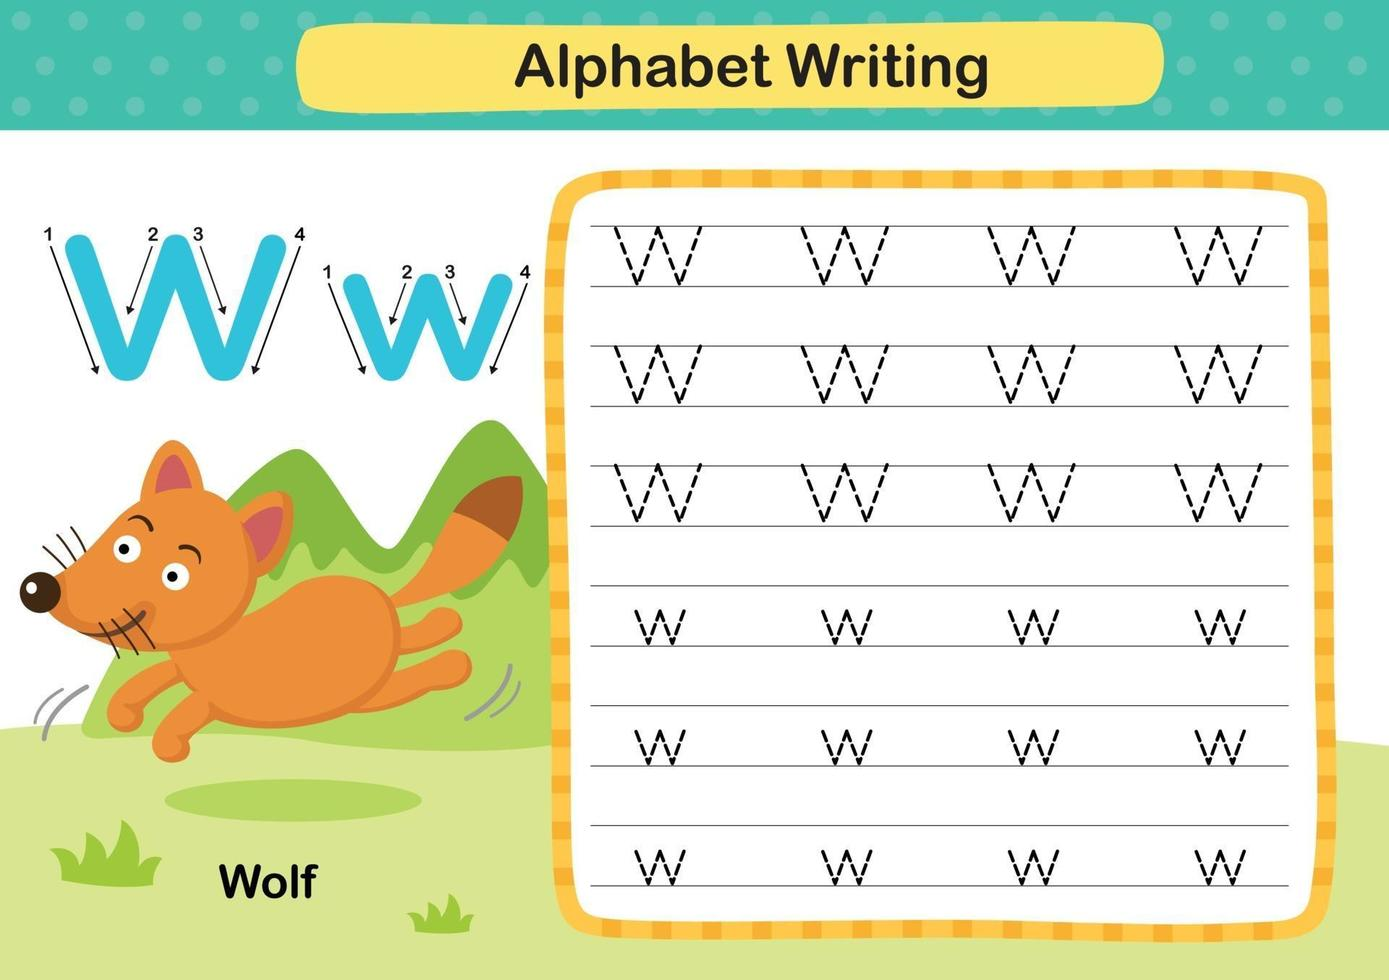 Alphabet Letter W-Wolf exercise with cartoon vocabulary illustration, vector